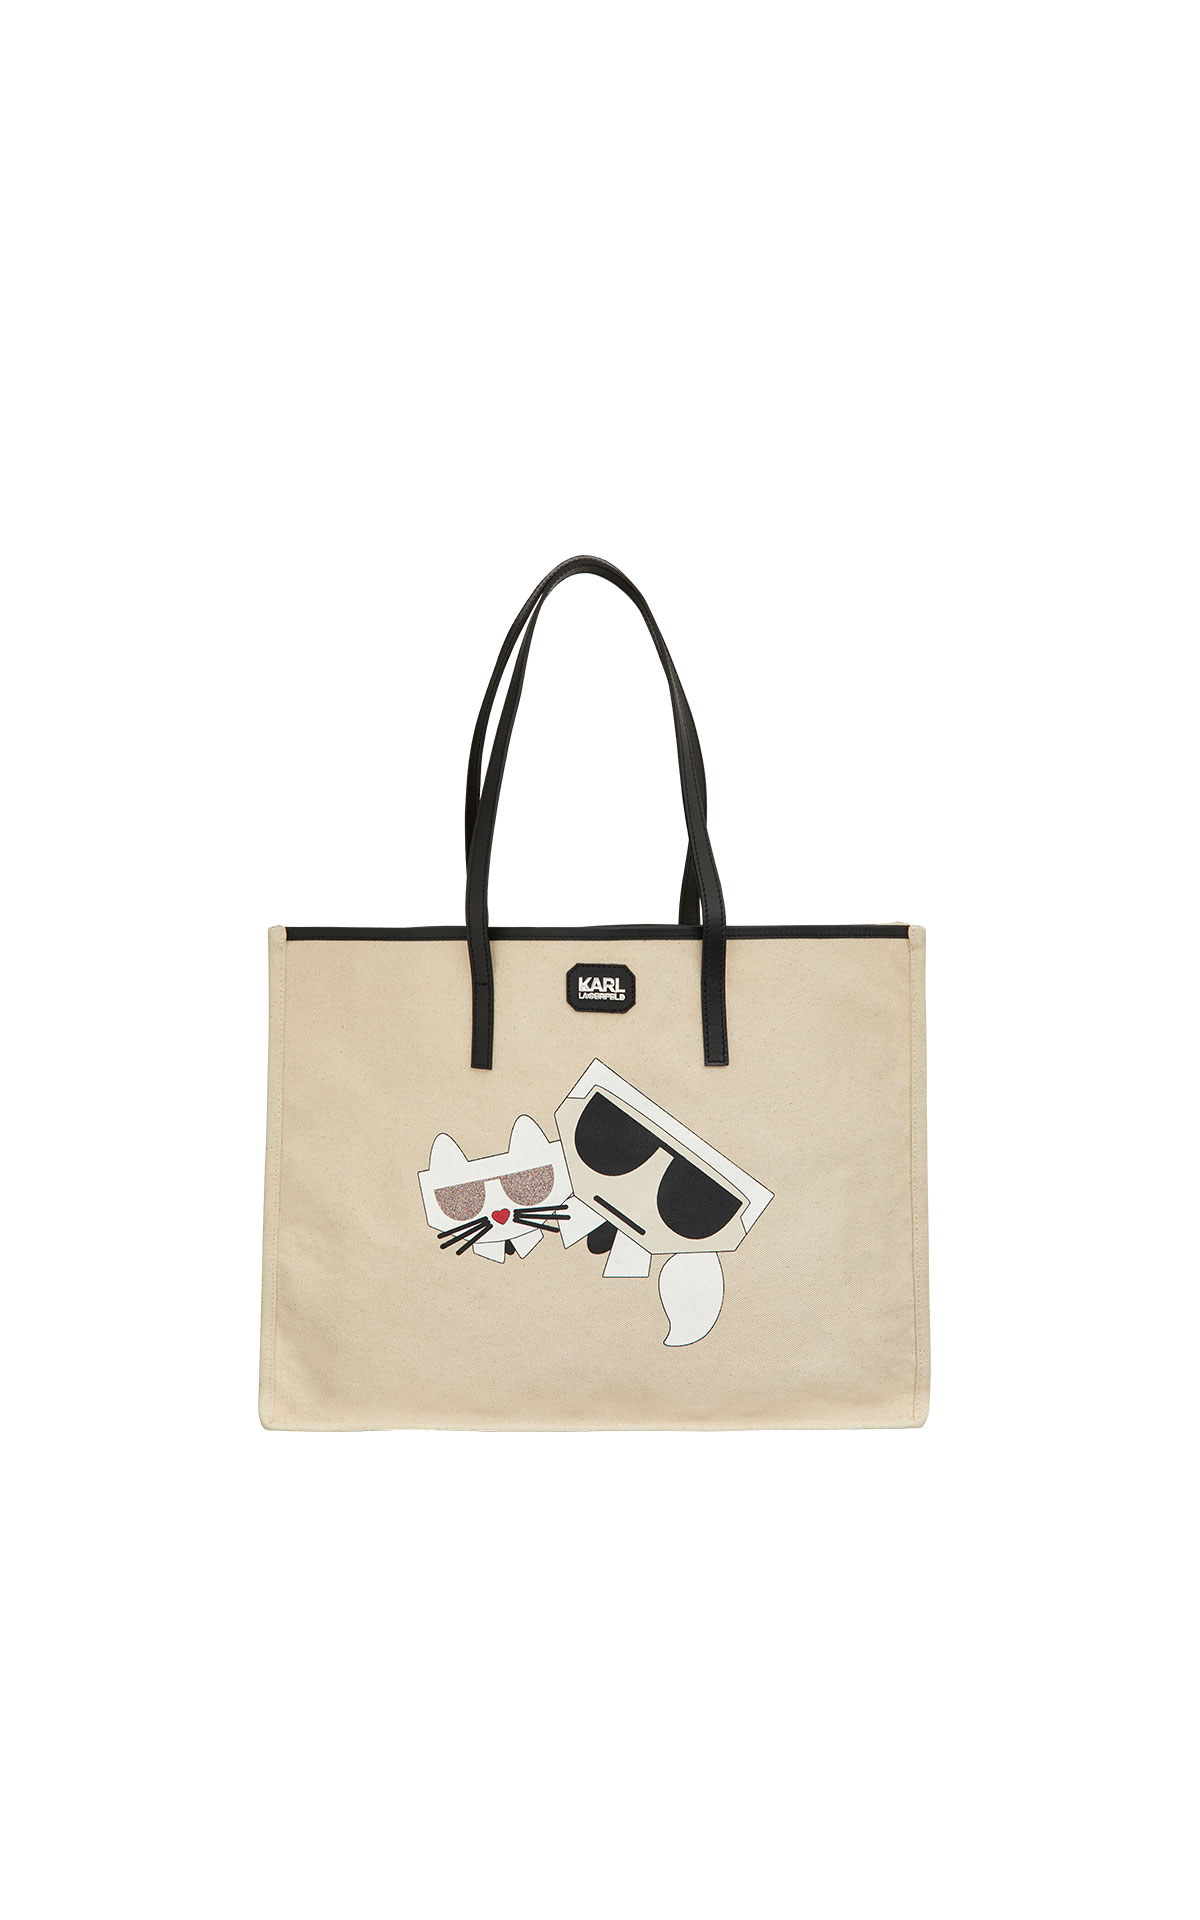 Karl Lagerfeld kocktail couple canvas bag at The Bicester Village Shopping Collection